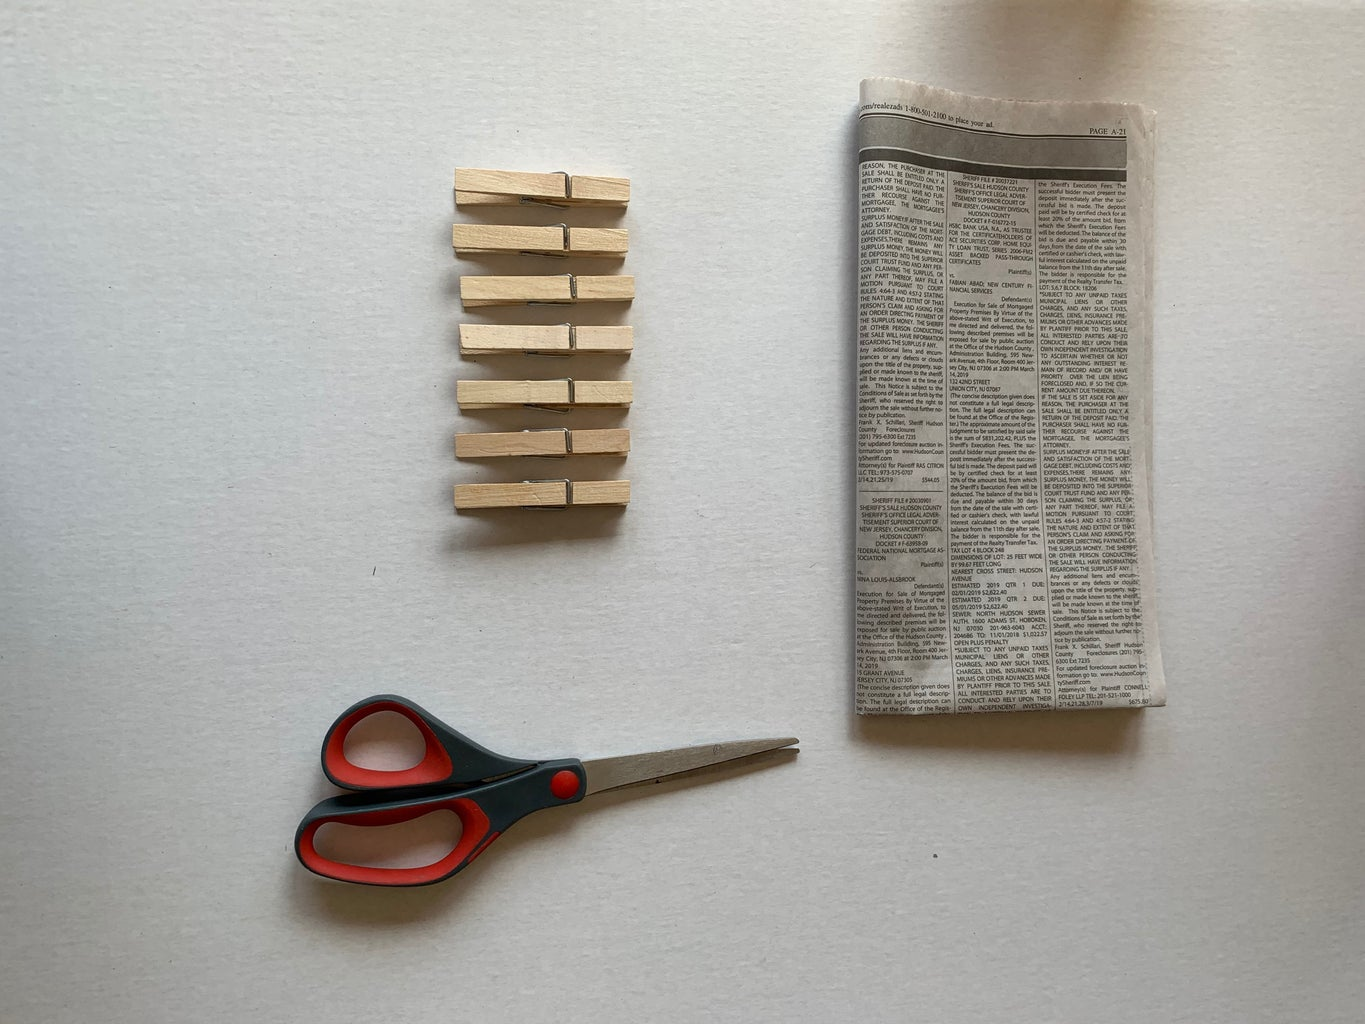 Step 7: Decorating the Clothespins